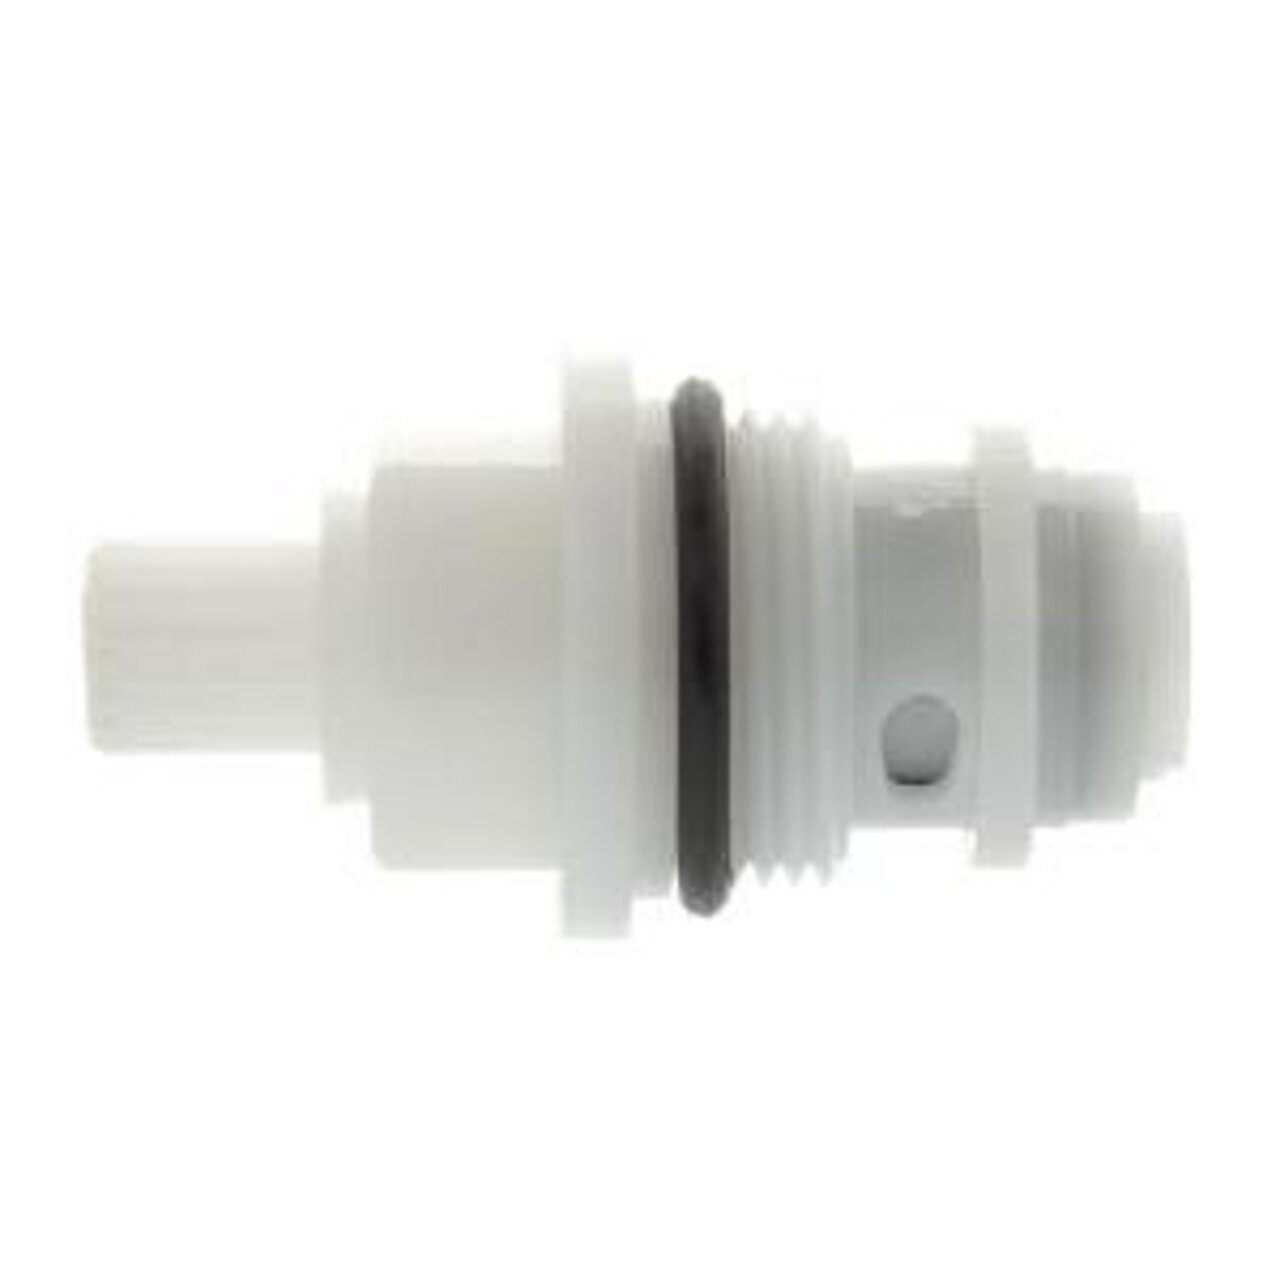 Danco 16015B 3J 4 Hot or Cold Streamway/Nibco Stem - Faucet Stems ...